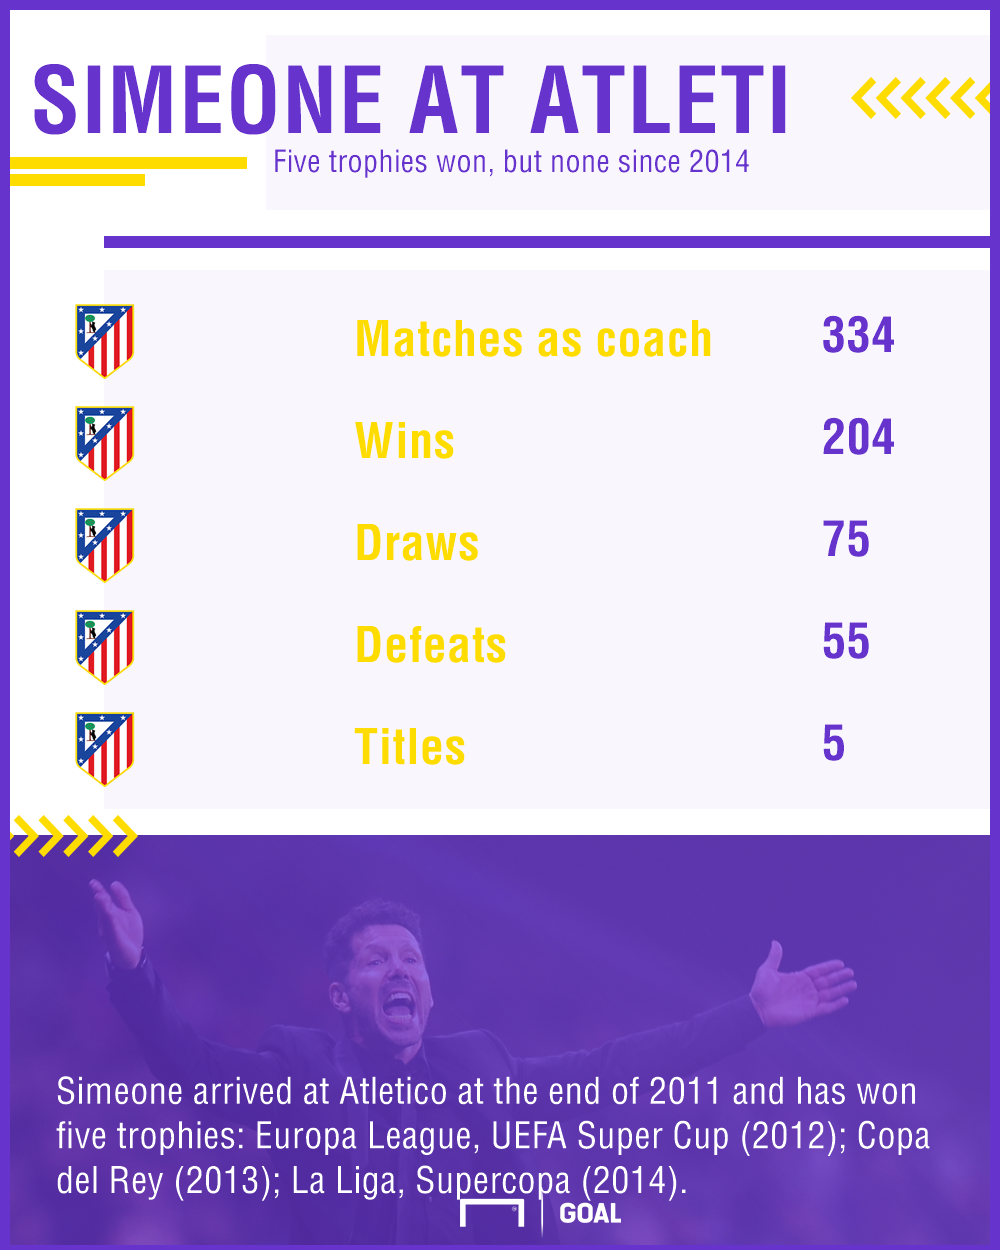 Simeone at Atleti graphic